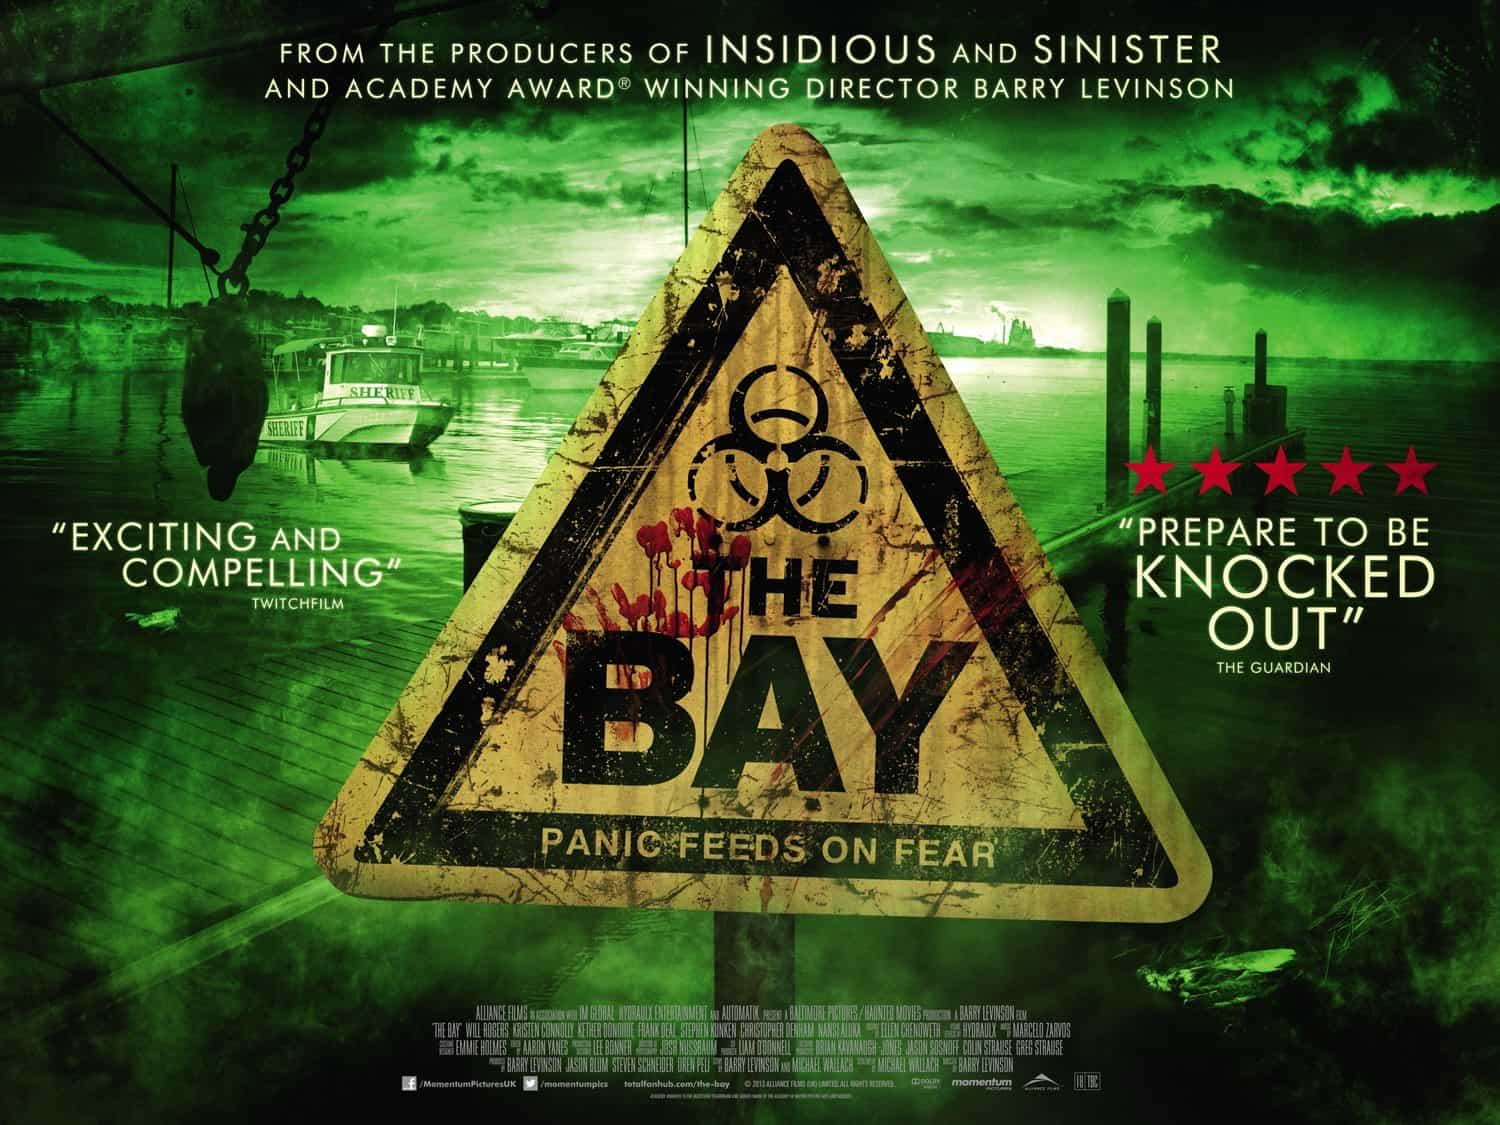 Horror Movie Review: The Bay (2012)